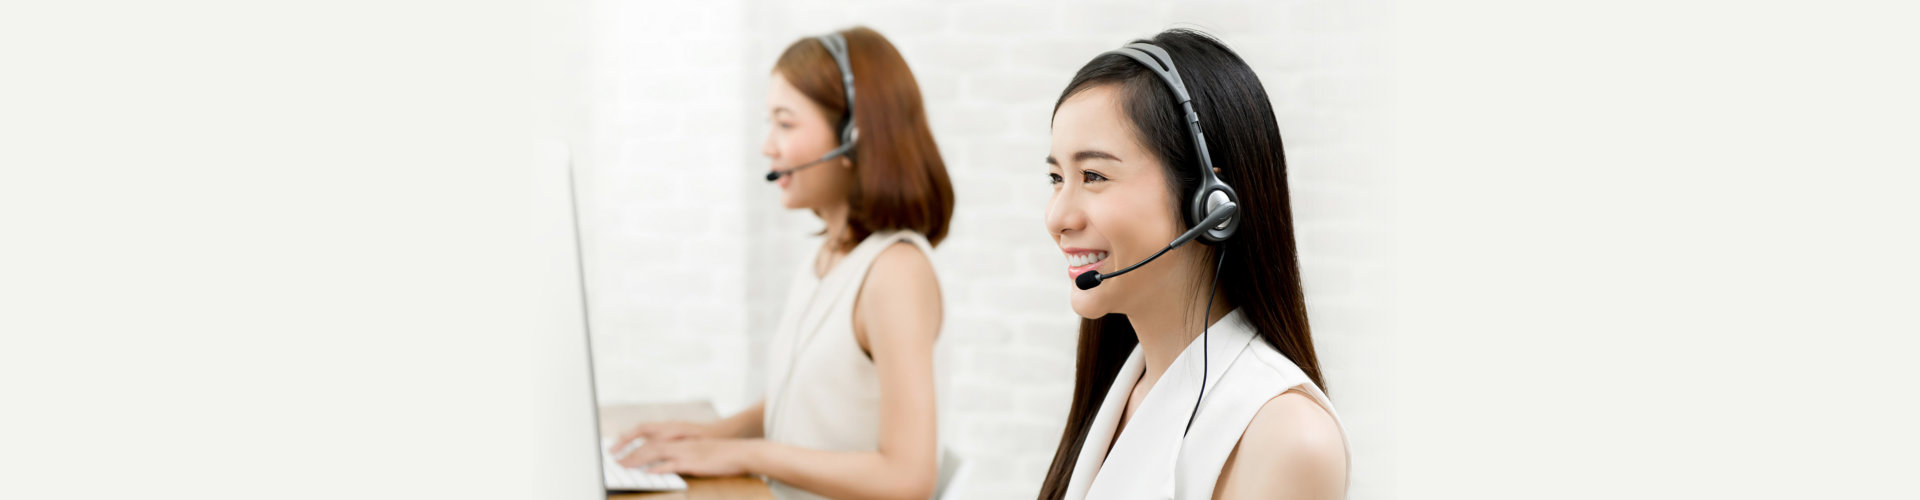 Smiling Asian woman telemarketing customer service agent team